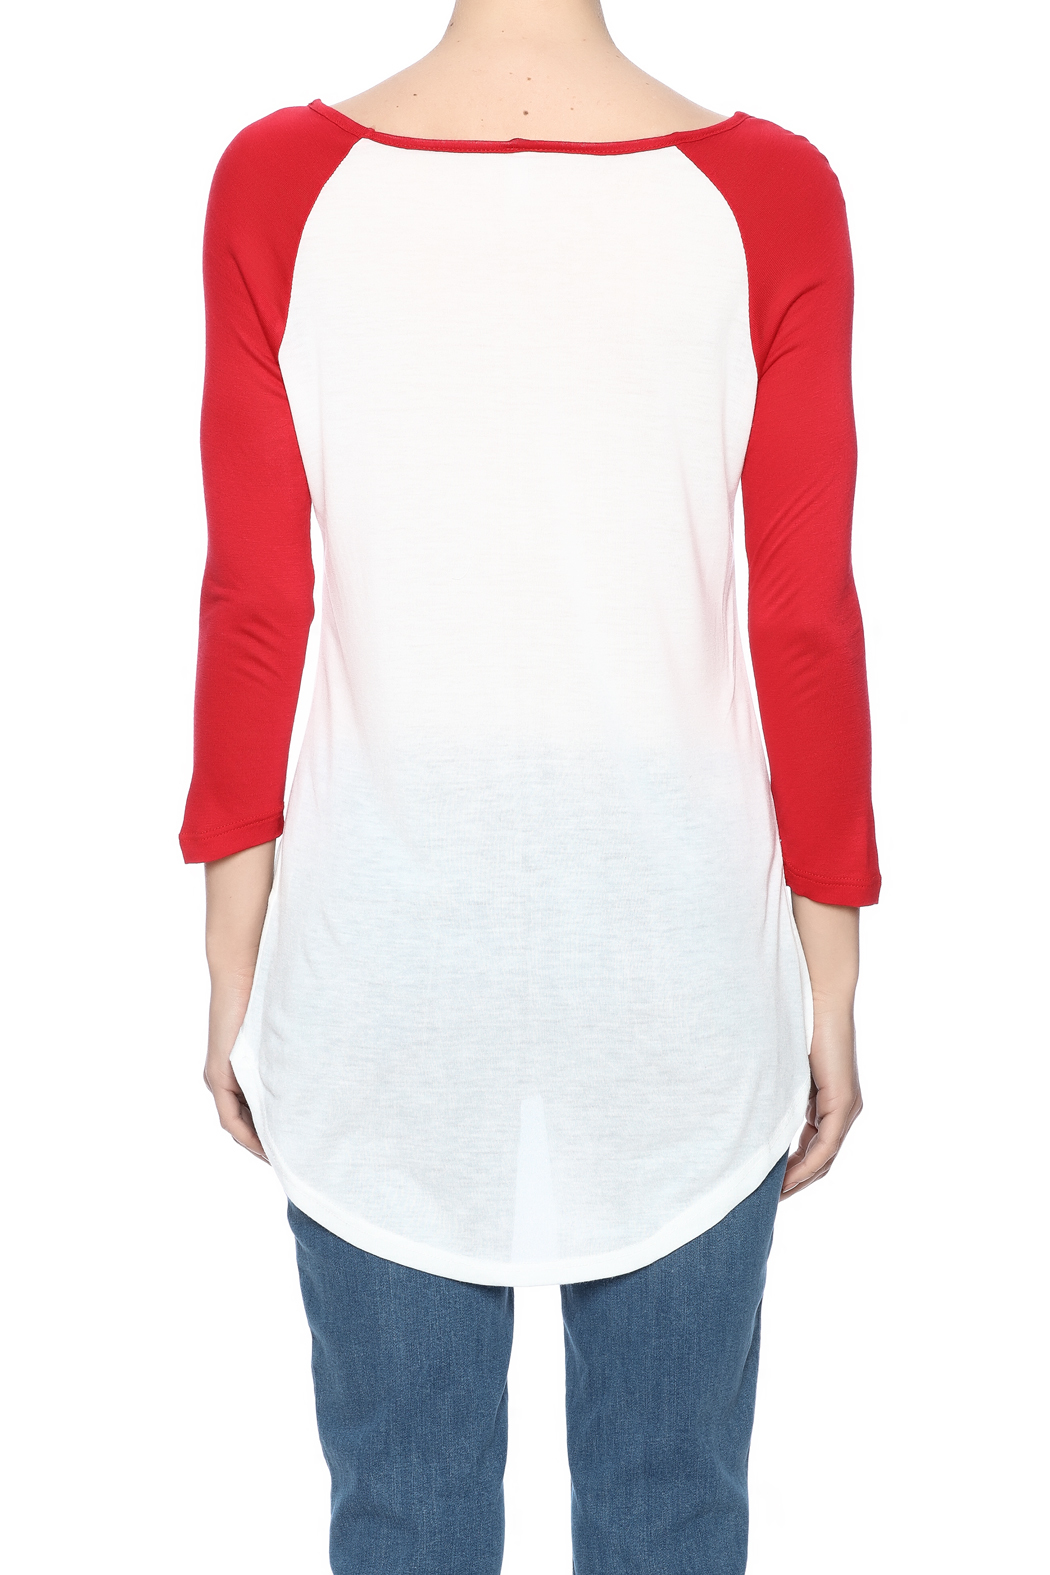 fave by Vfish Wine Baseball Tee - Back Cropped Image